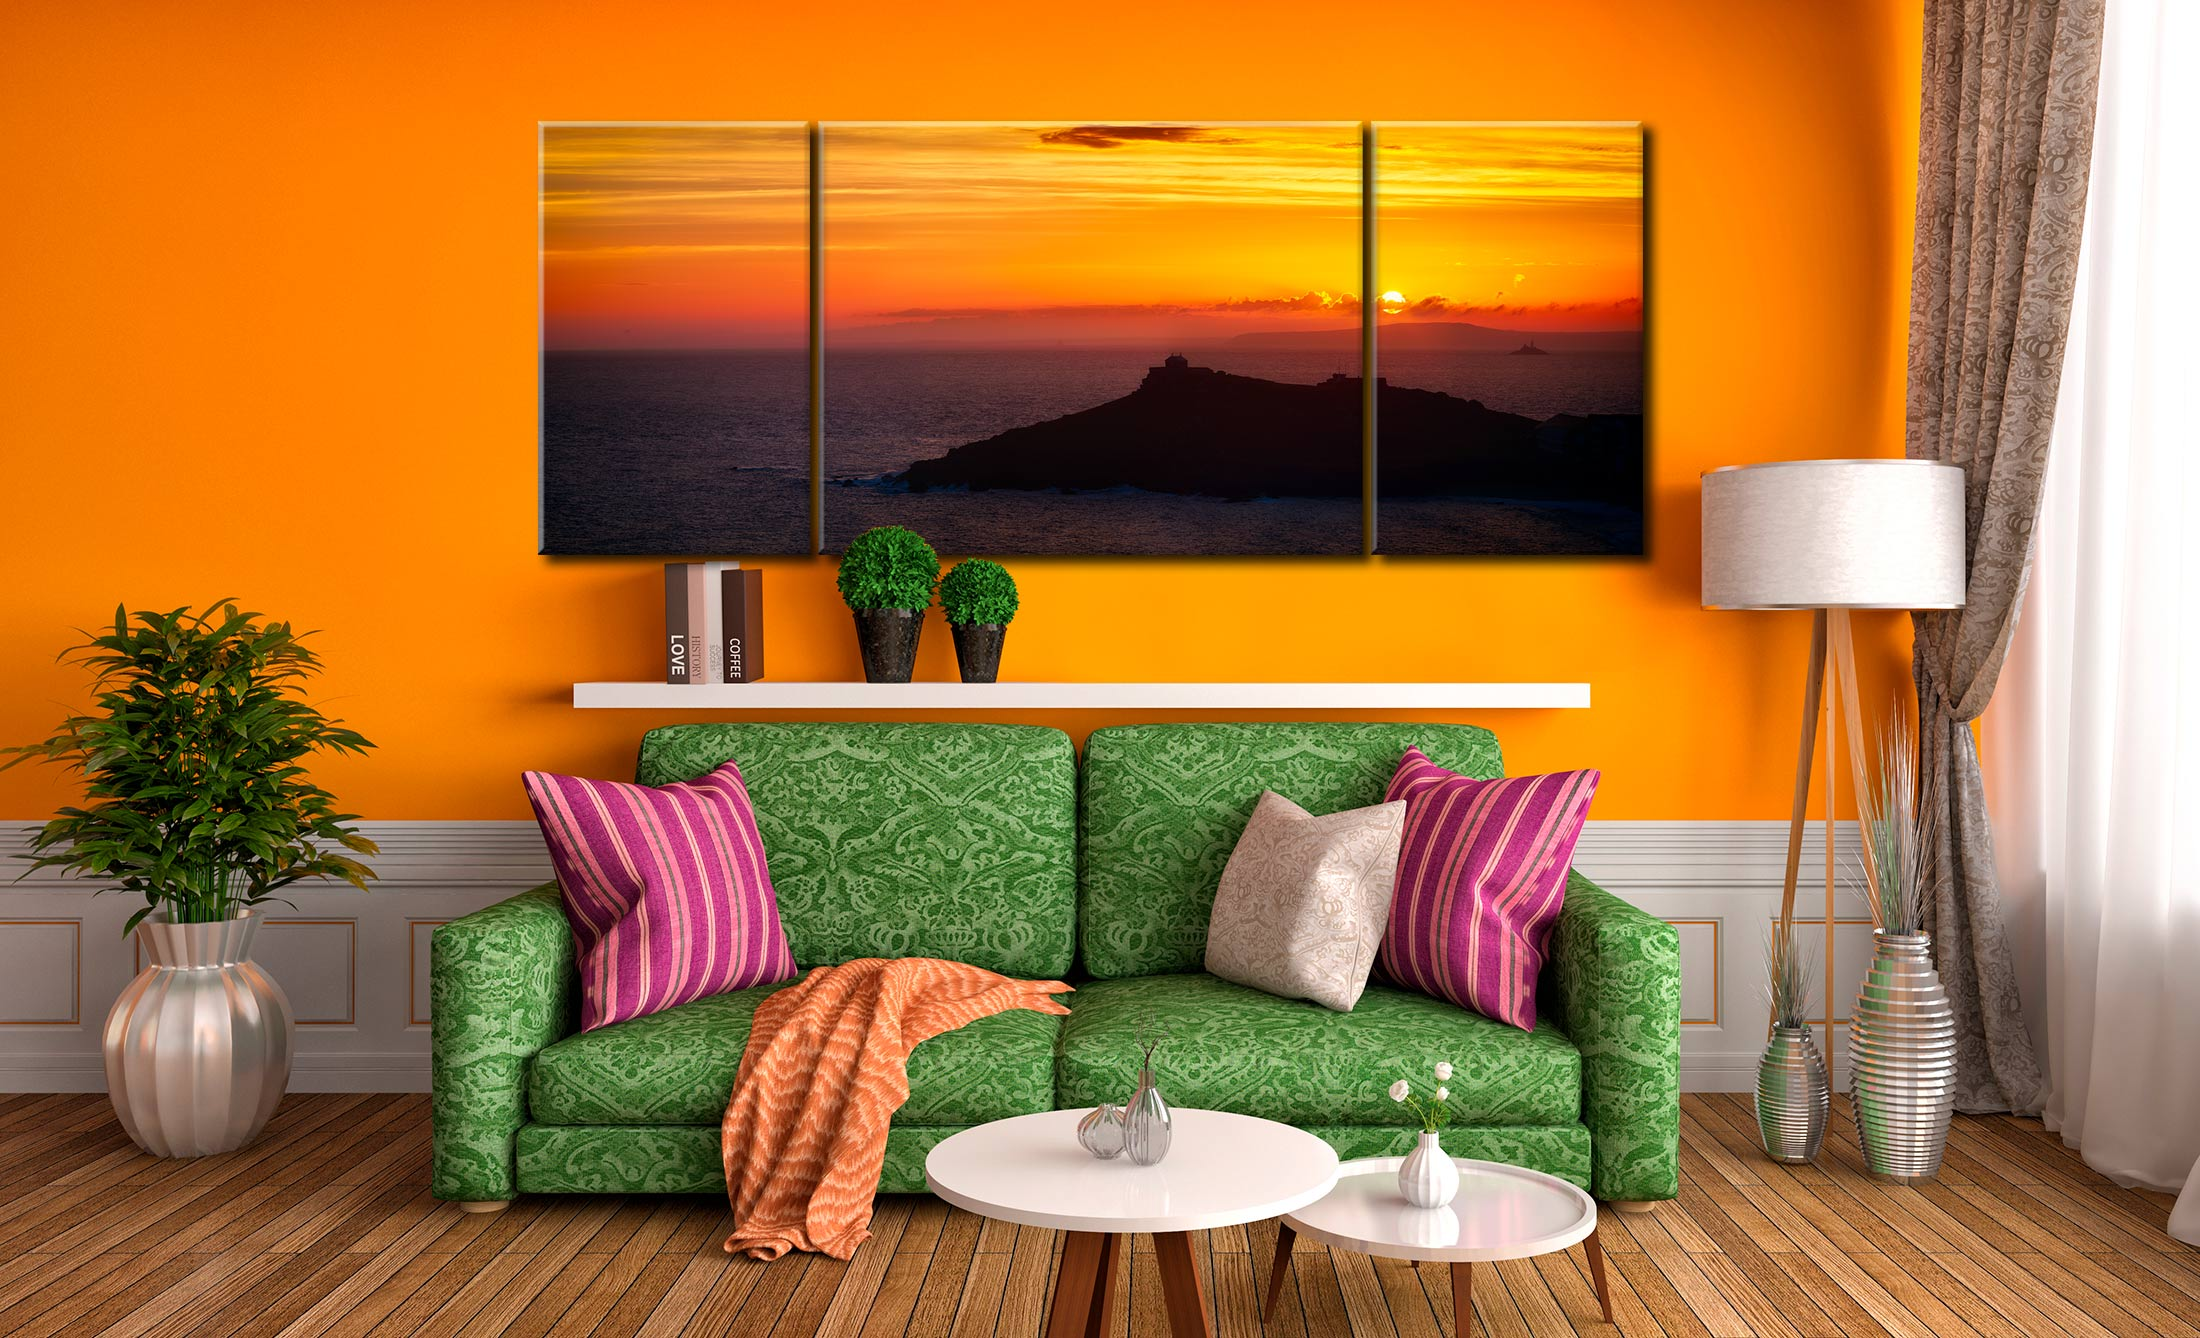 Sunrise Over St Ives Island - 3 Panel Wide Mid Canvas on Wall